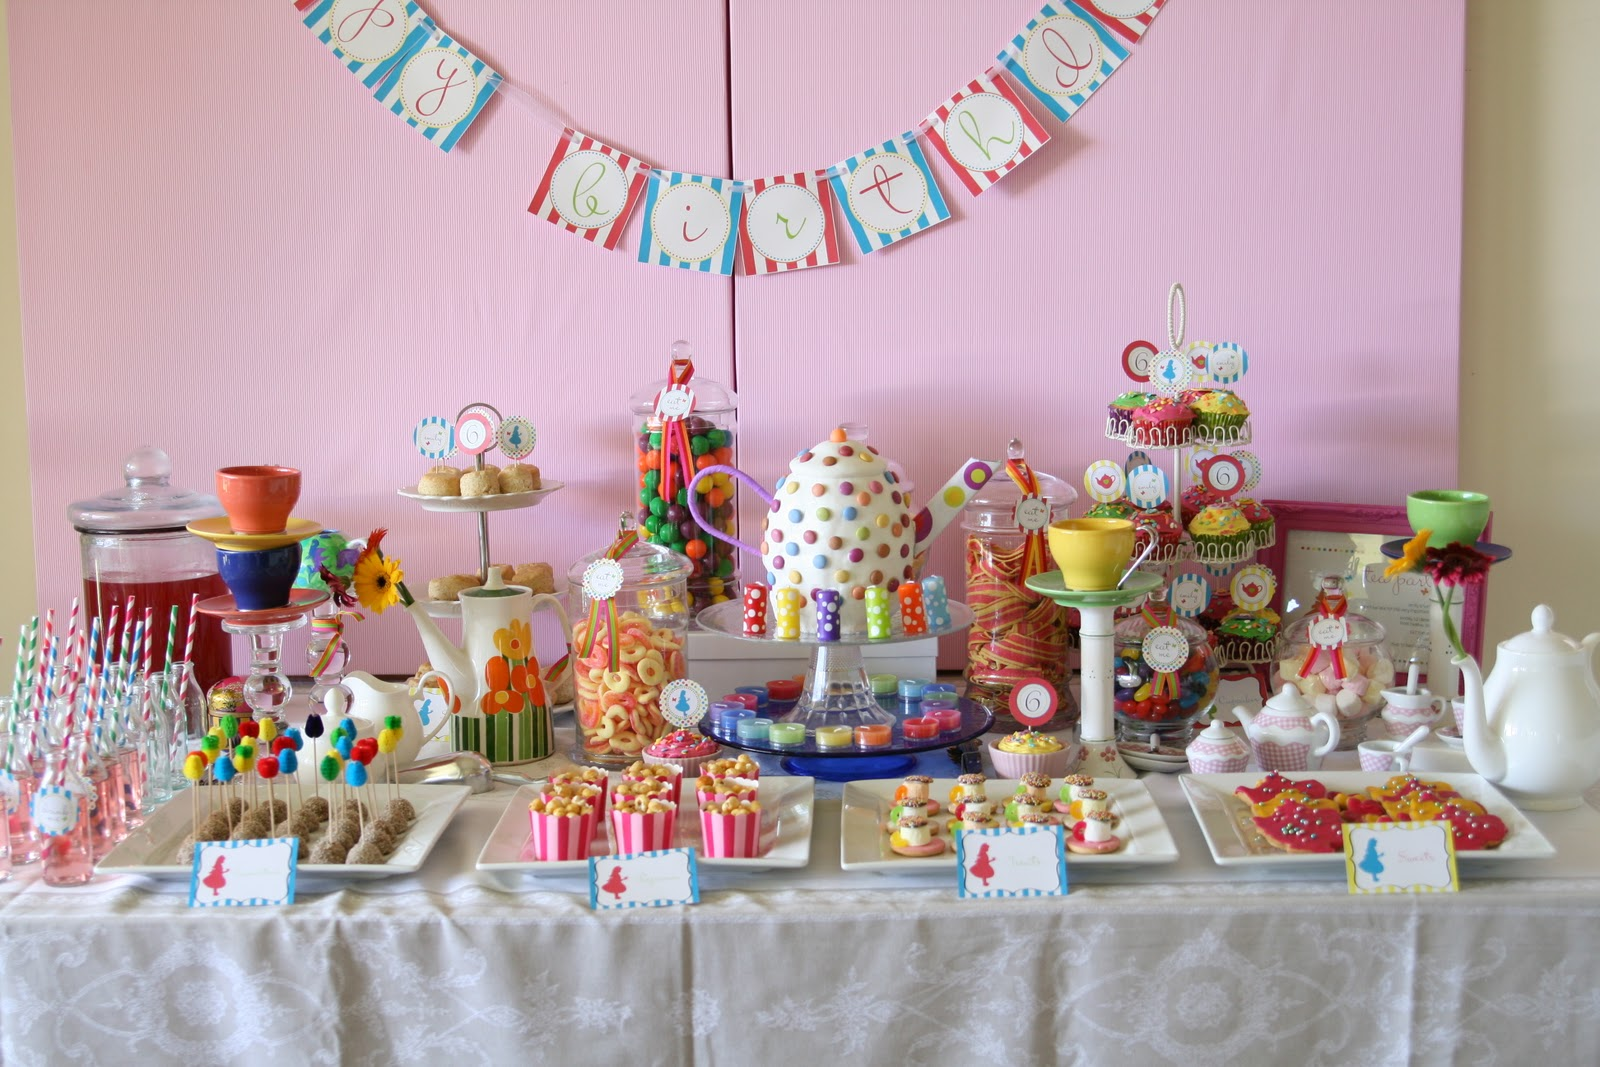 mad tea party - photo #46